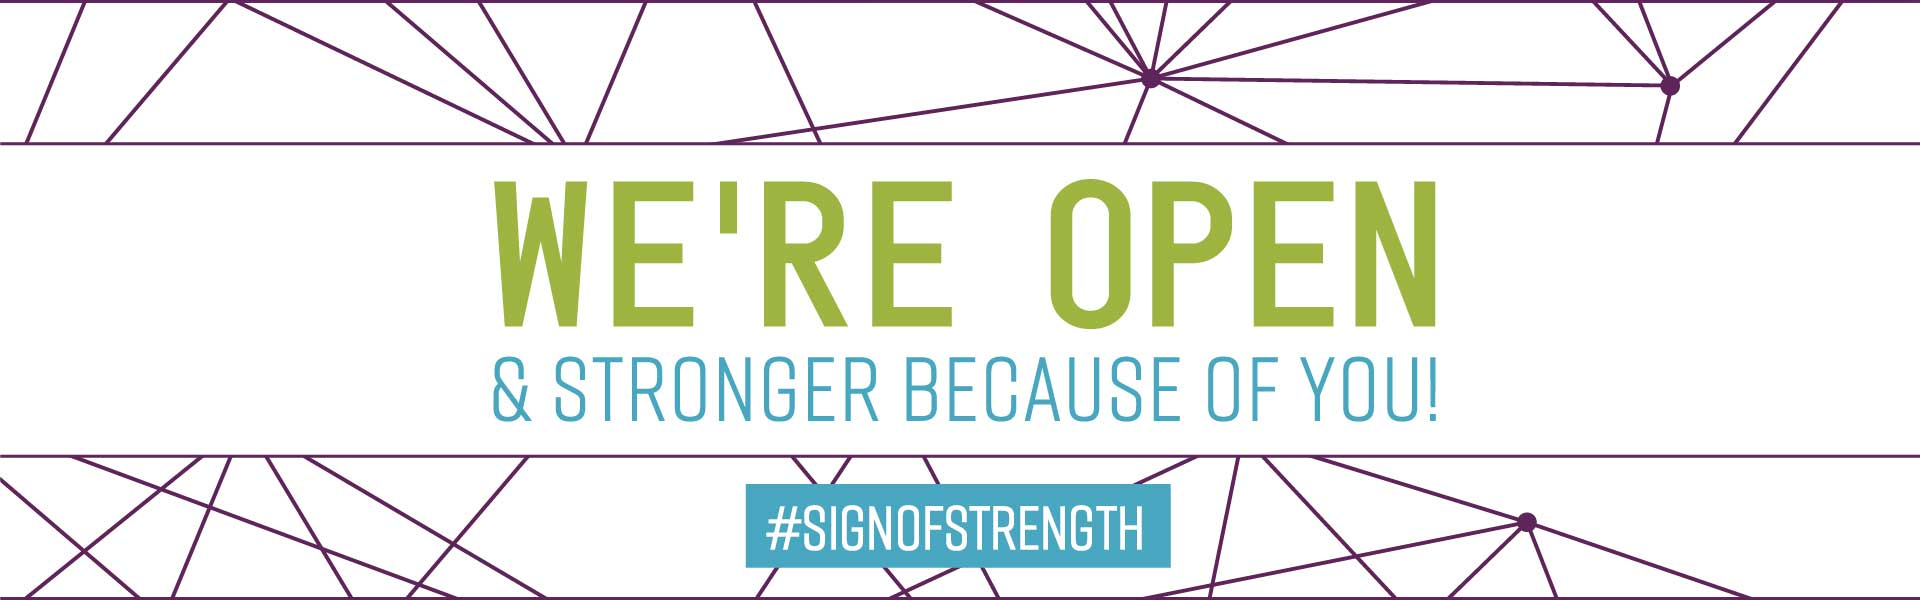 We are open and stronger because of you